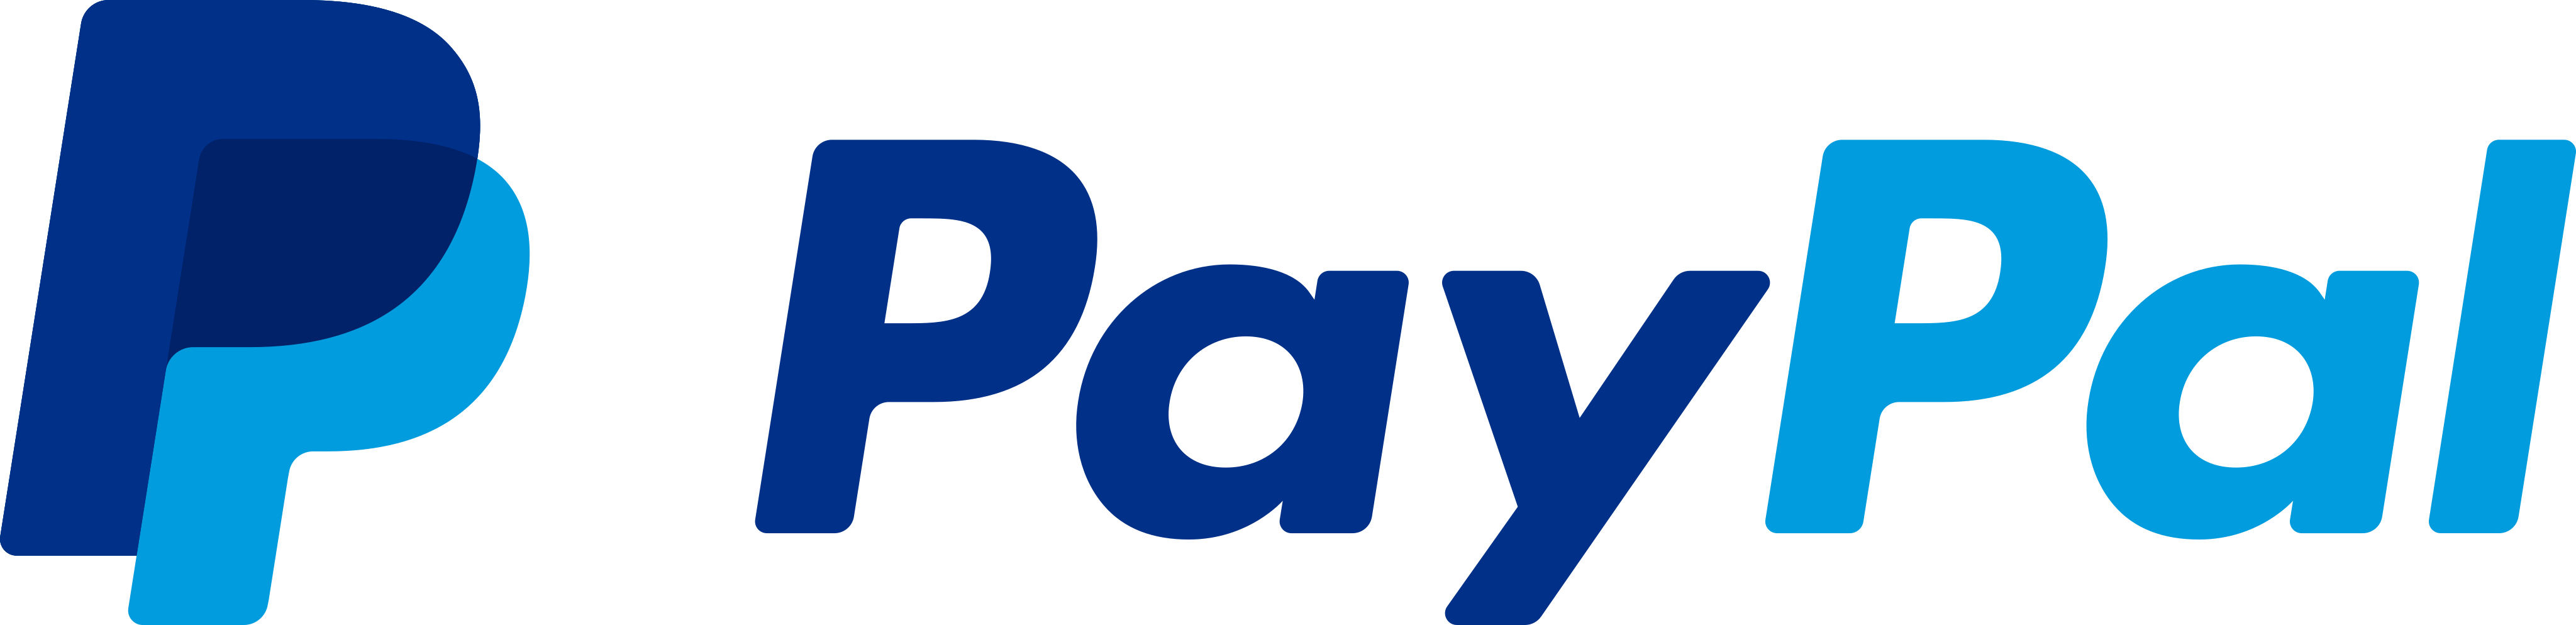 Paypal Logo - PNG and Vector - Logo Download